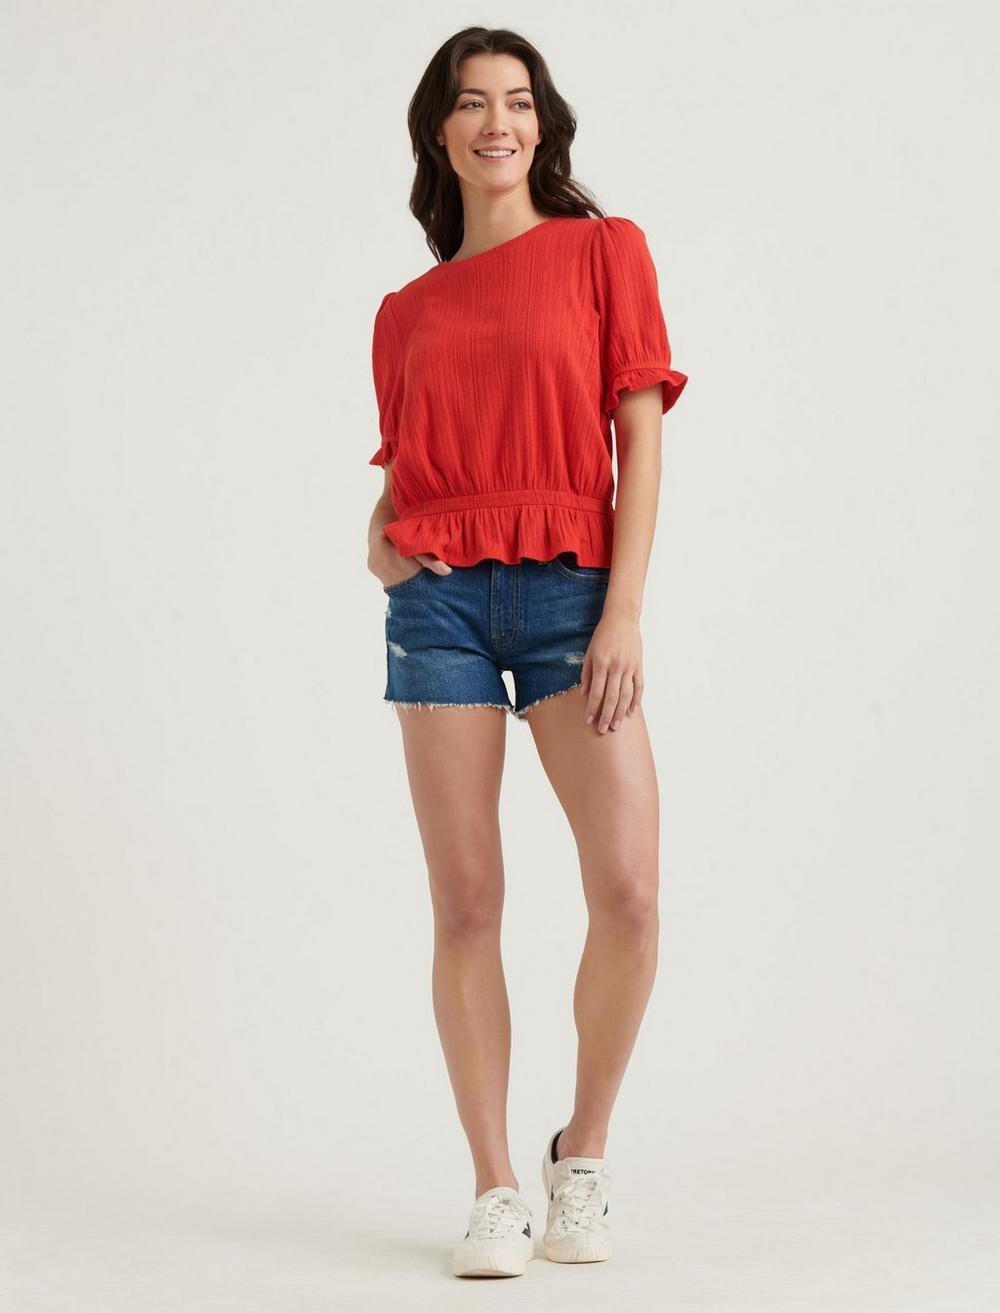 POINTELLE KNIT BANDED TOP, image 2